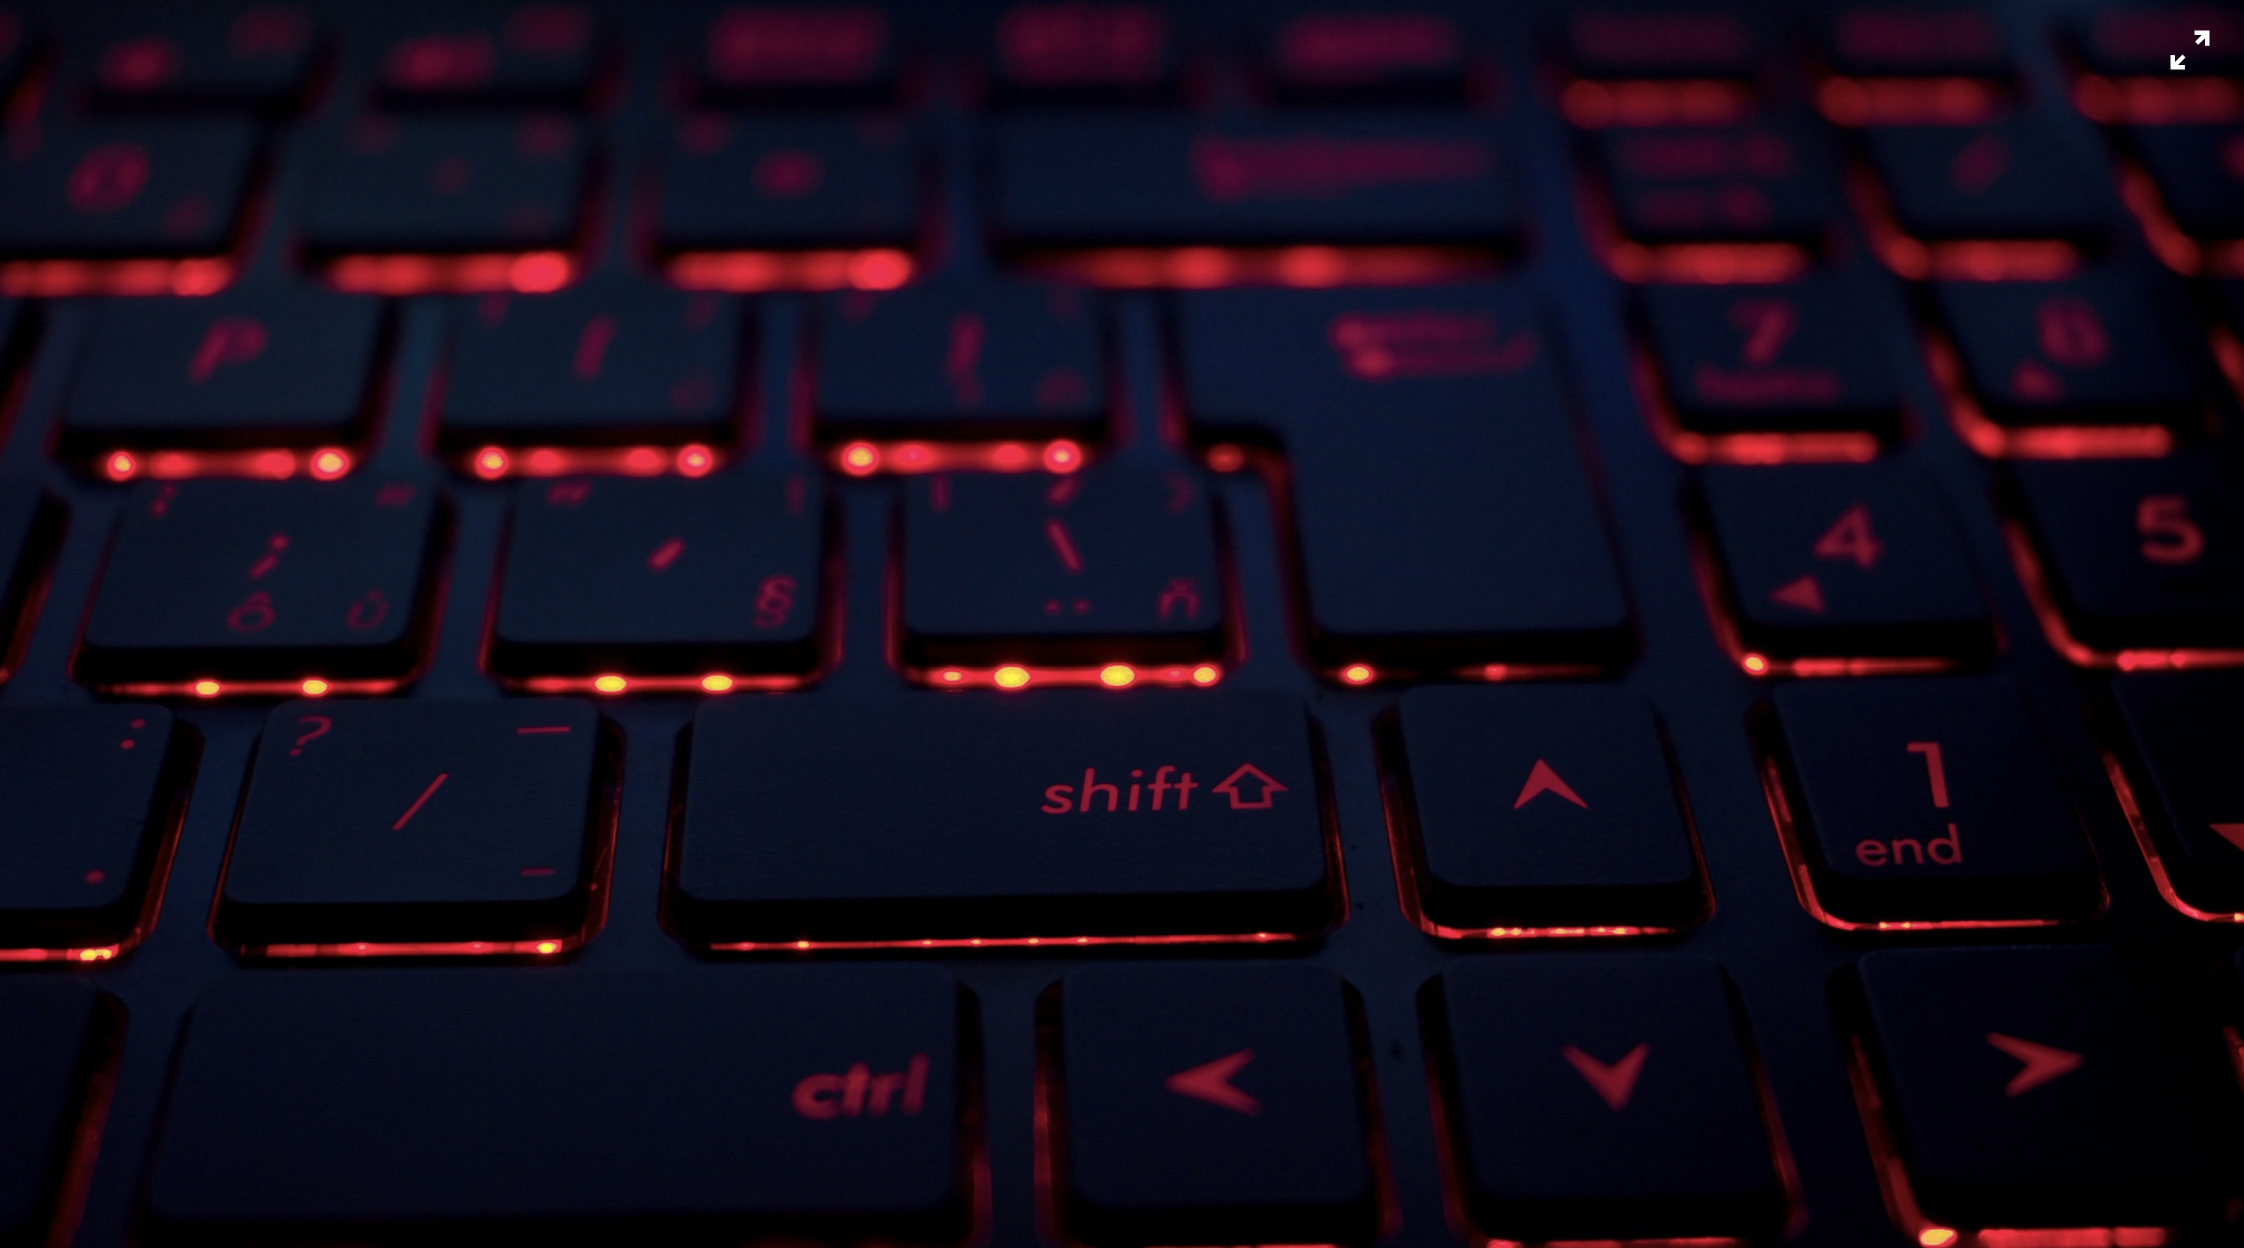 Image of a red-lit keyboard